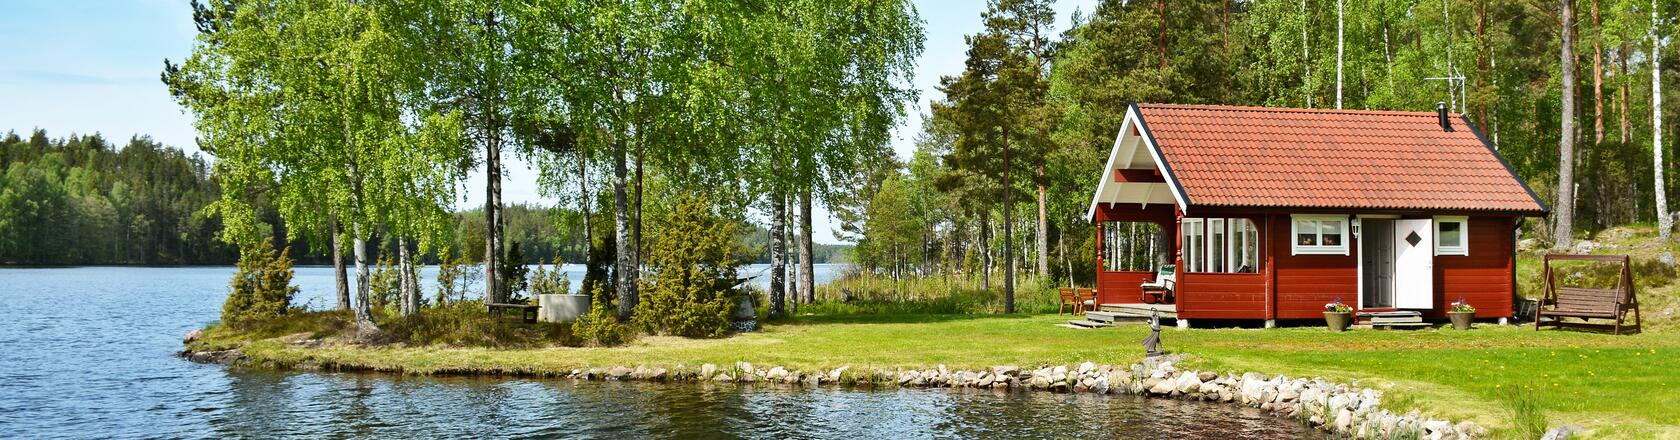 Book a holiday home in Sweden - 800 holiday homes in Sweden